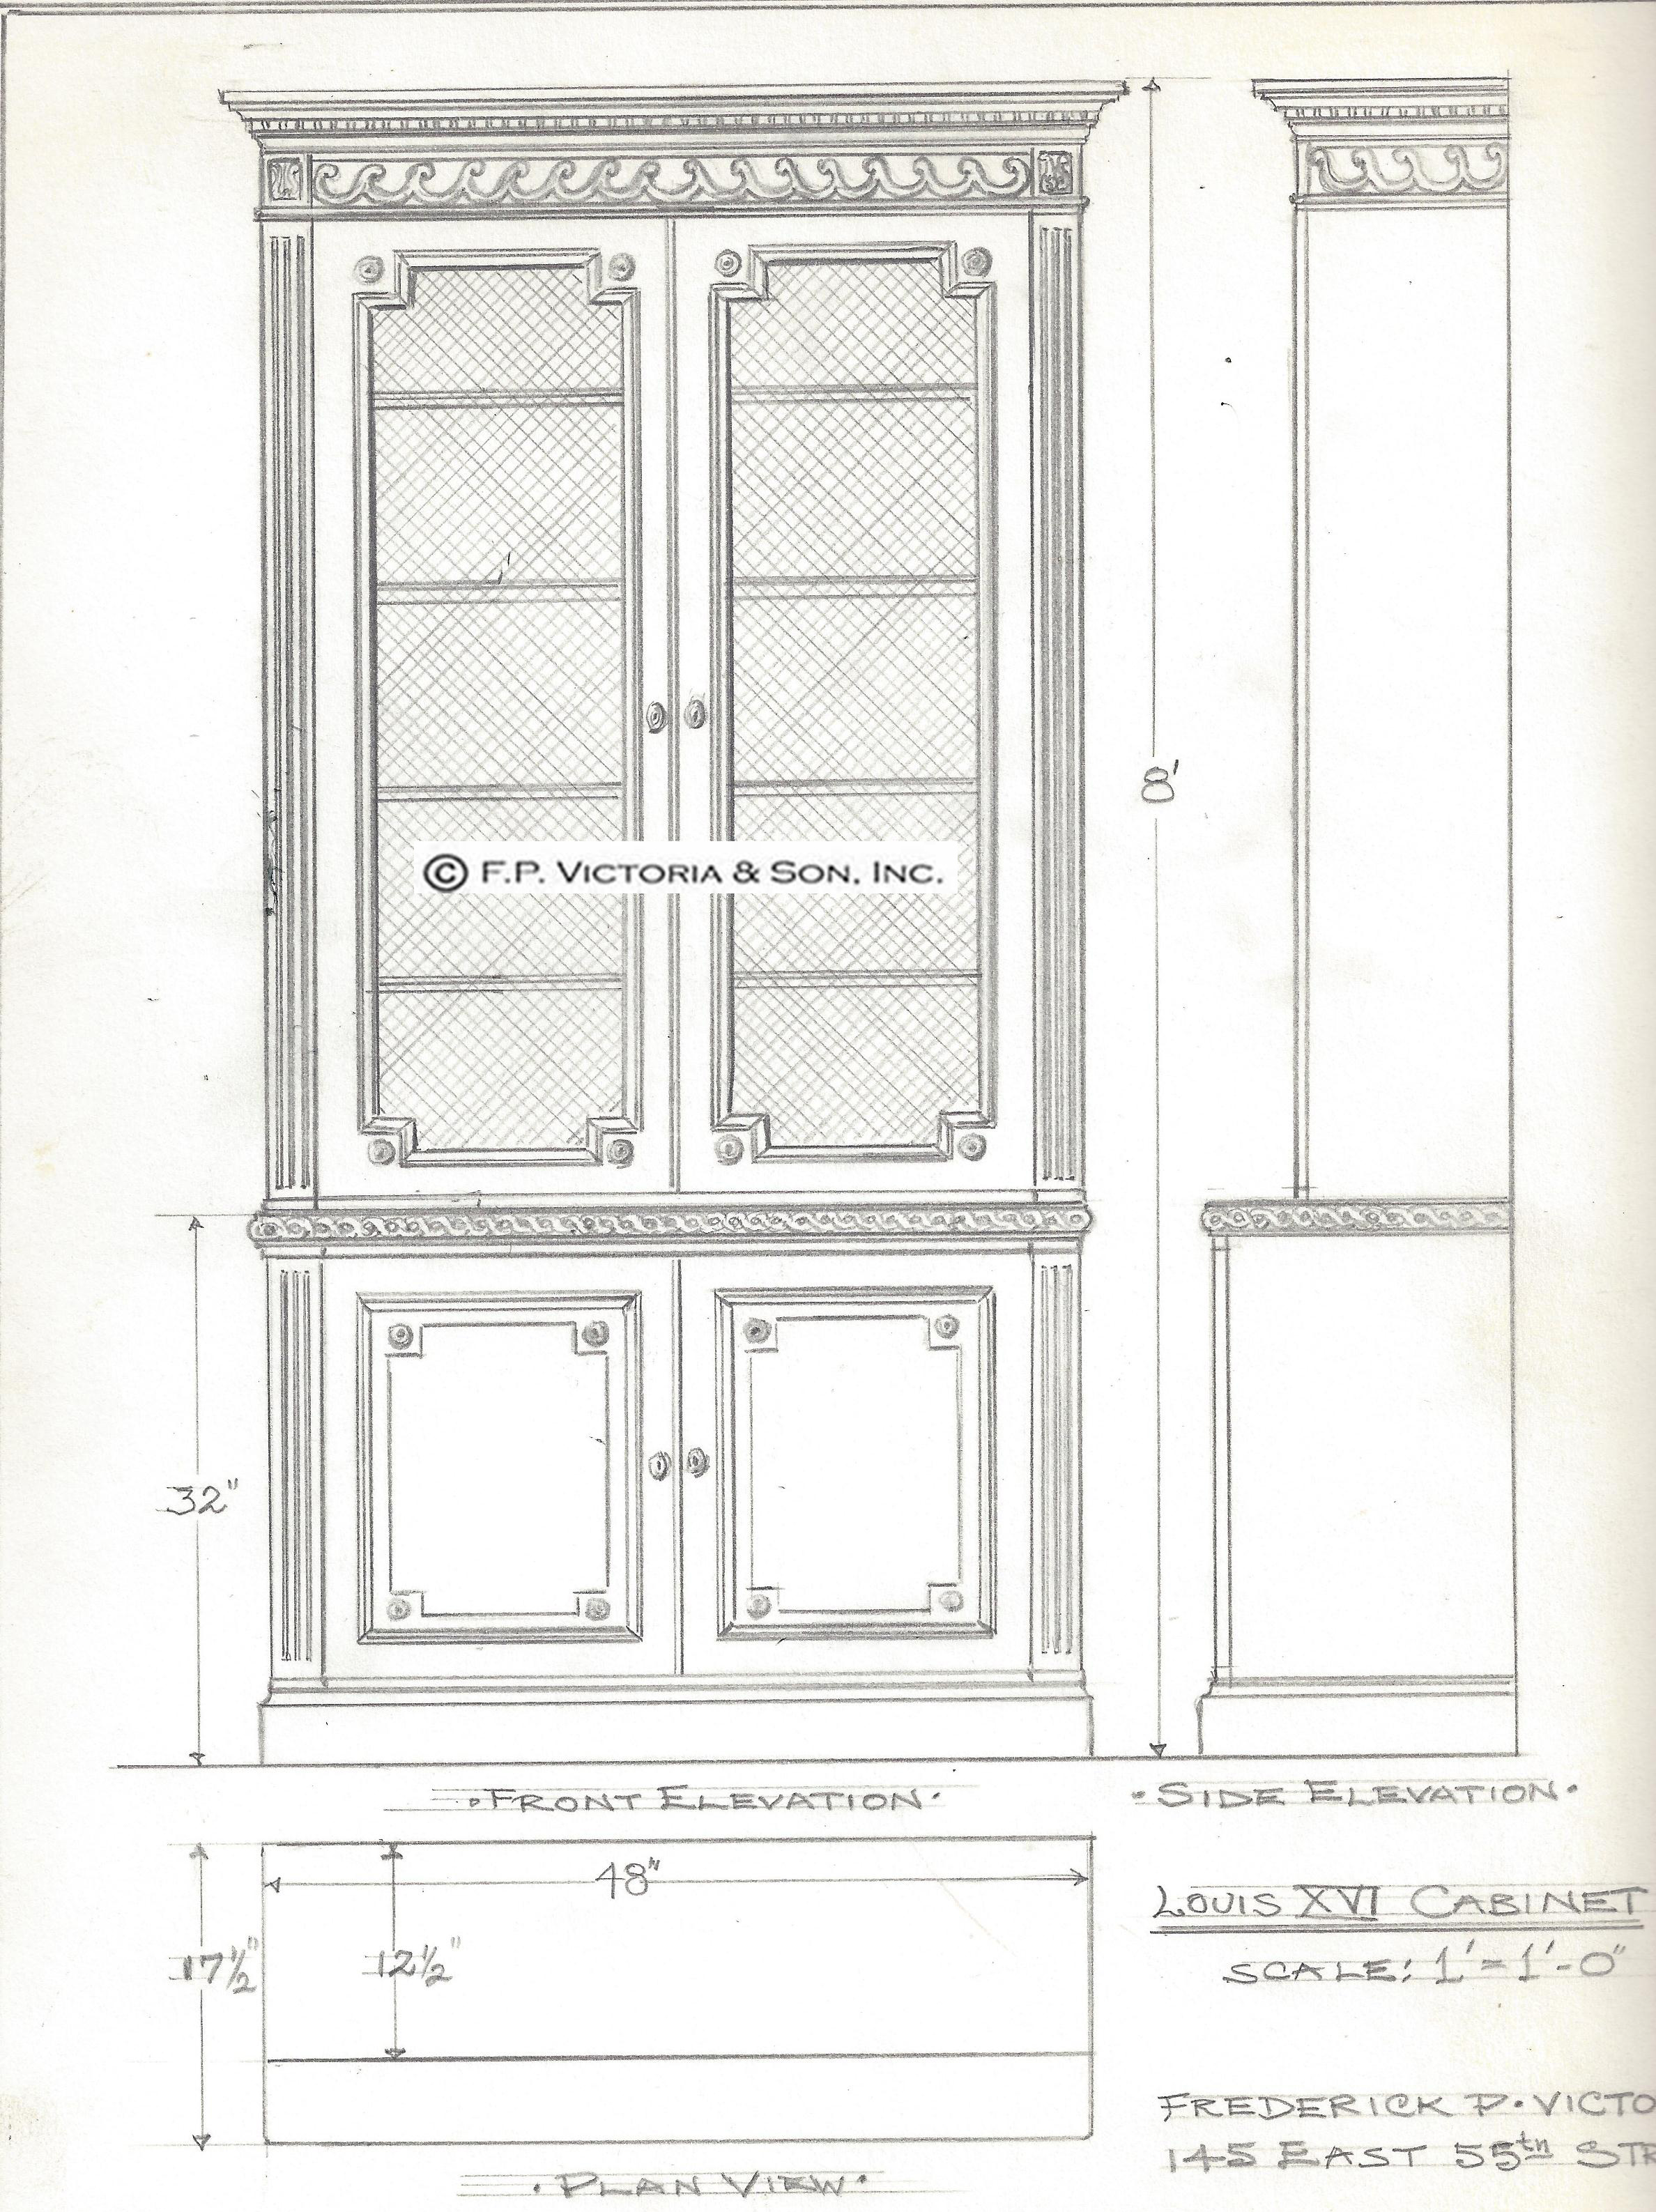 A breakfront variation of Victoria & Son model R650, Louis XVI style bookcase